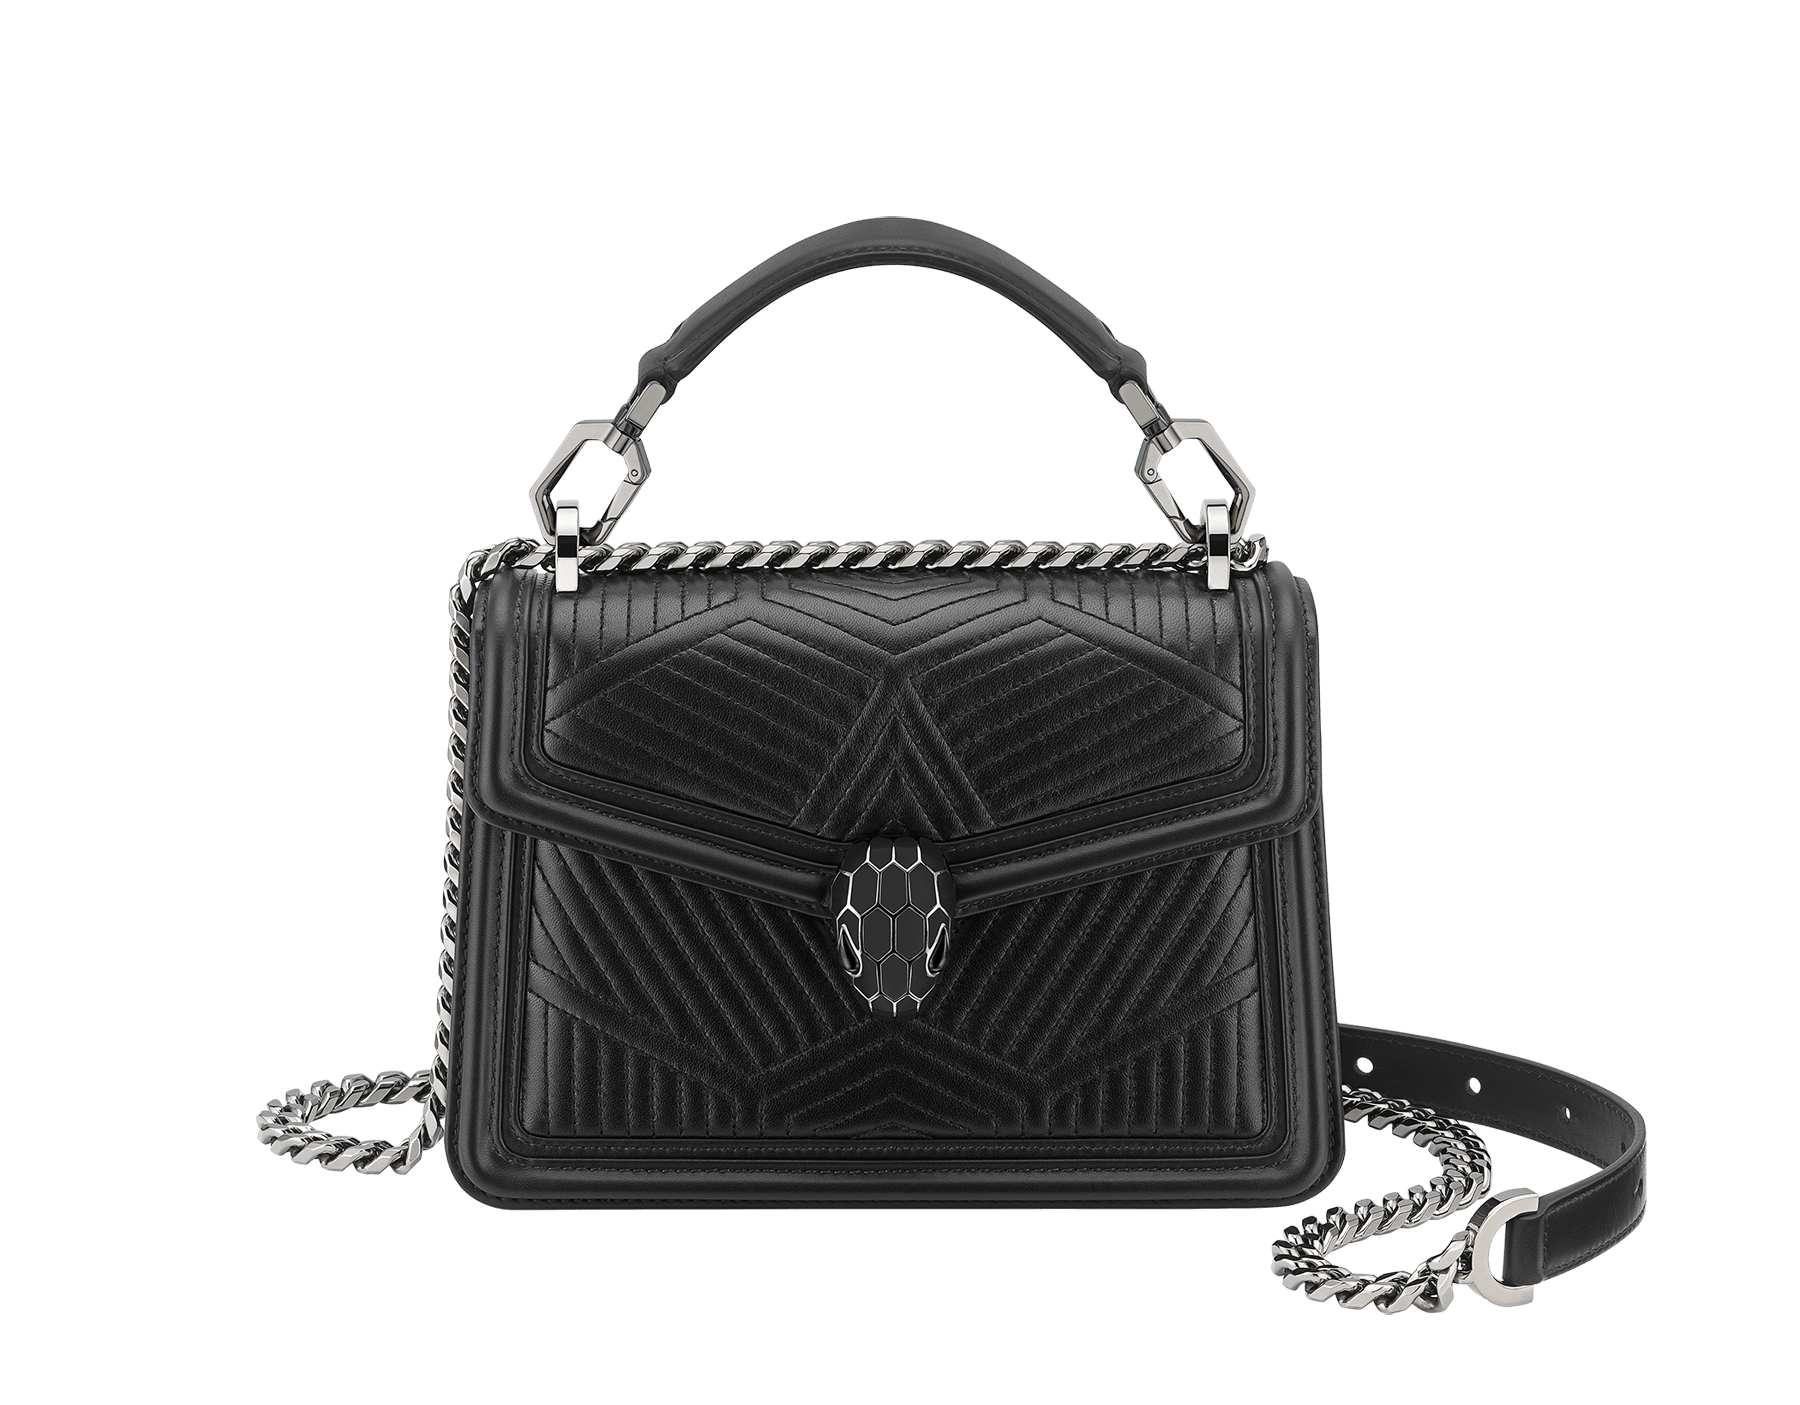 """Serpenti Diamond Blast"" crossbody bag in white agate quilted nappa leather and berry tourmaline smooth calf leather frames. Tempting snakehead closure in light gold-plated brass enhanced with matte black and shiny berry tourmaline enamel and black onyx eyes. 1063-FQDa image 1"